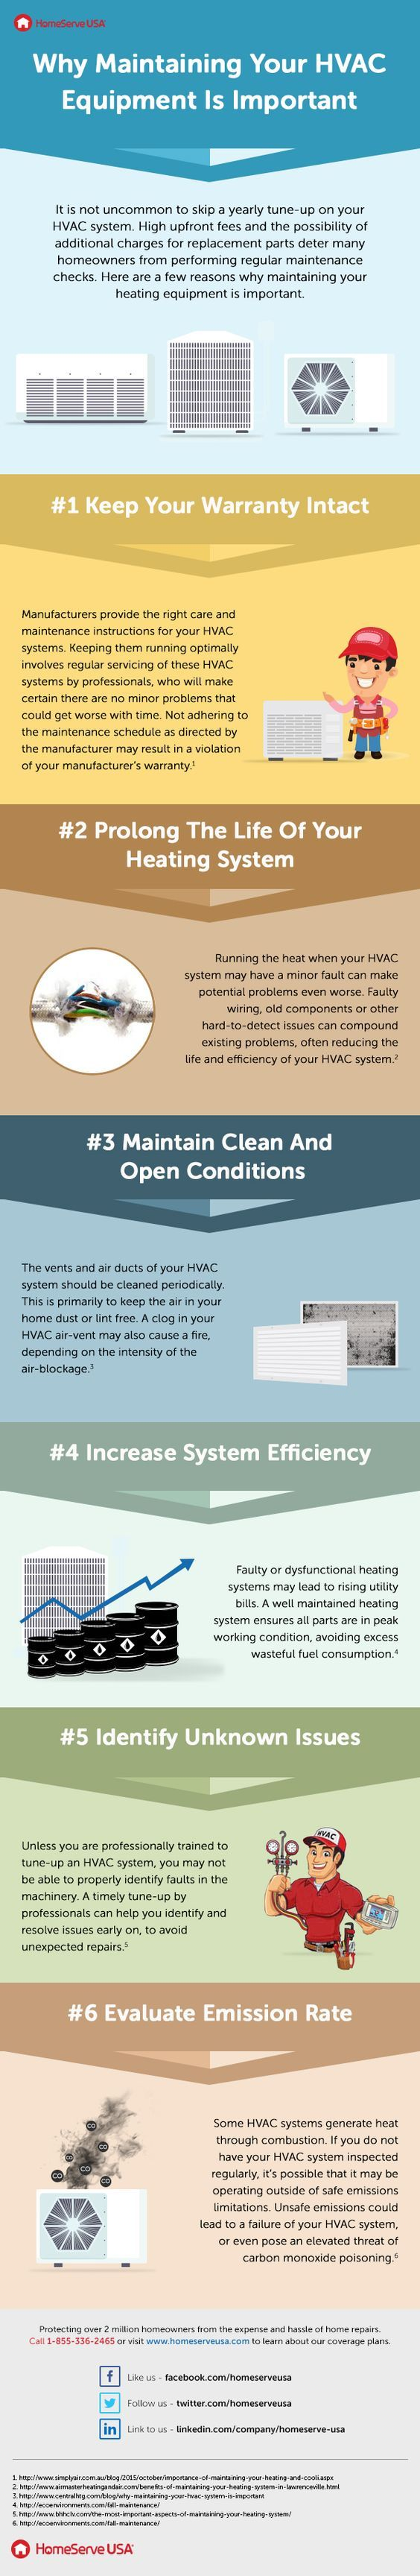 Why Maintaining Your Hvac Equipment Is Important Infographic